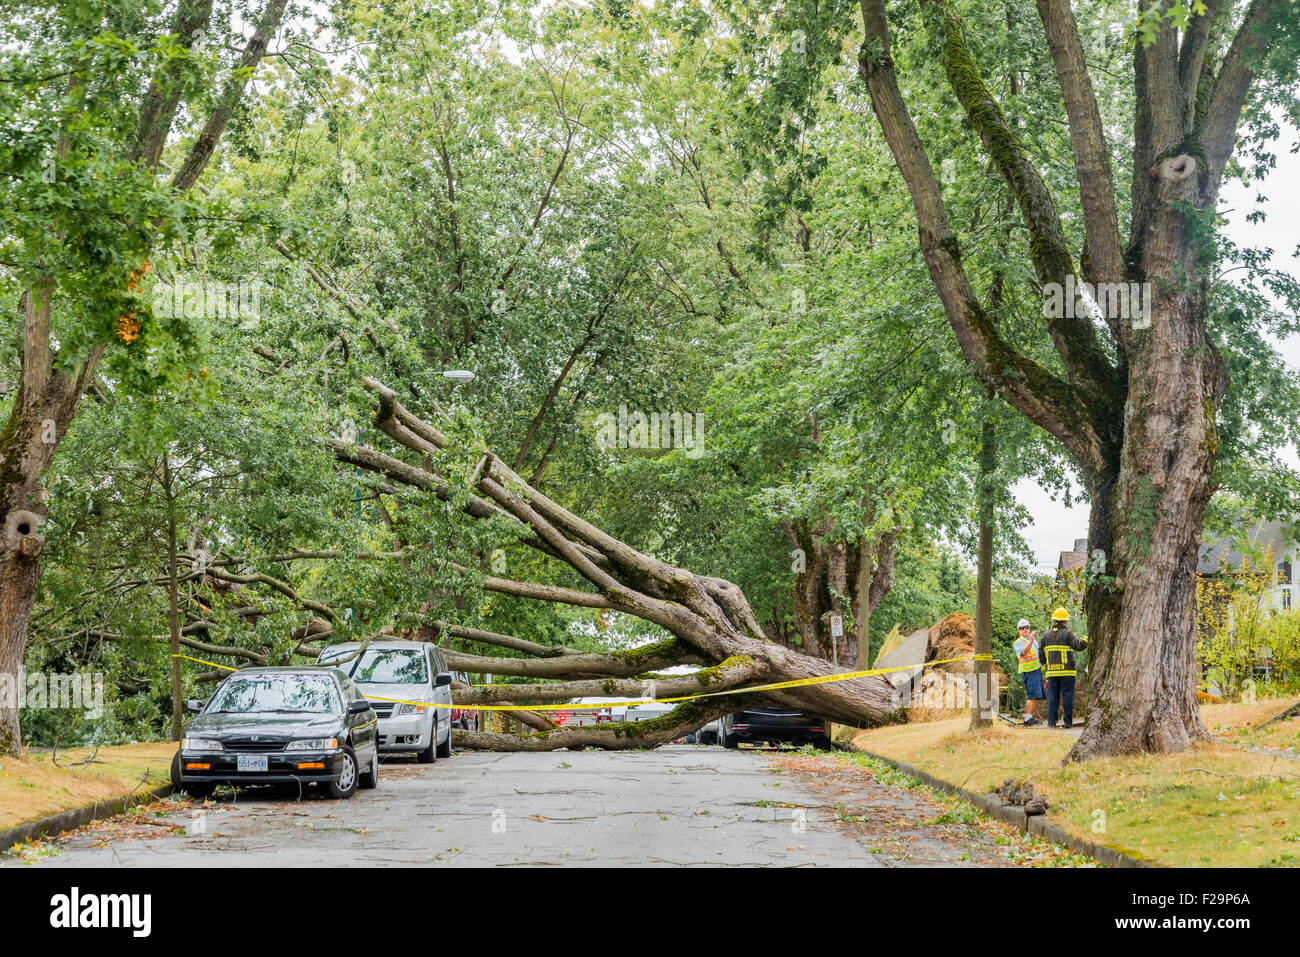 Powerful storm winds knock over trees and cause widespread power disruptions, Vancouver, British Columbia, Canada - Stock Image